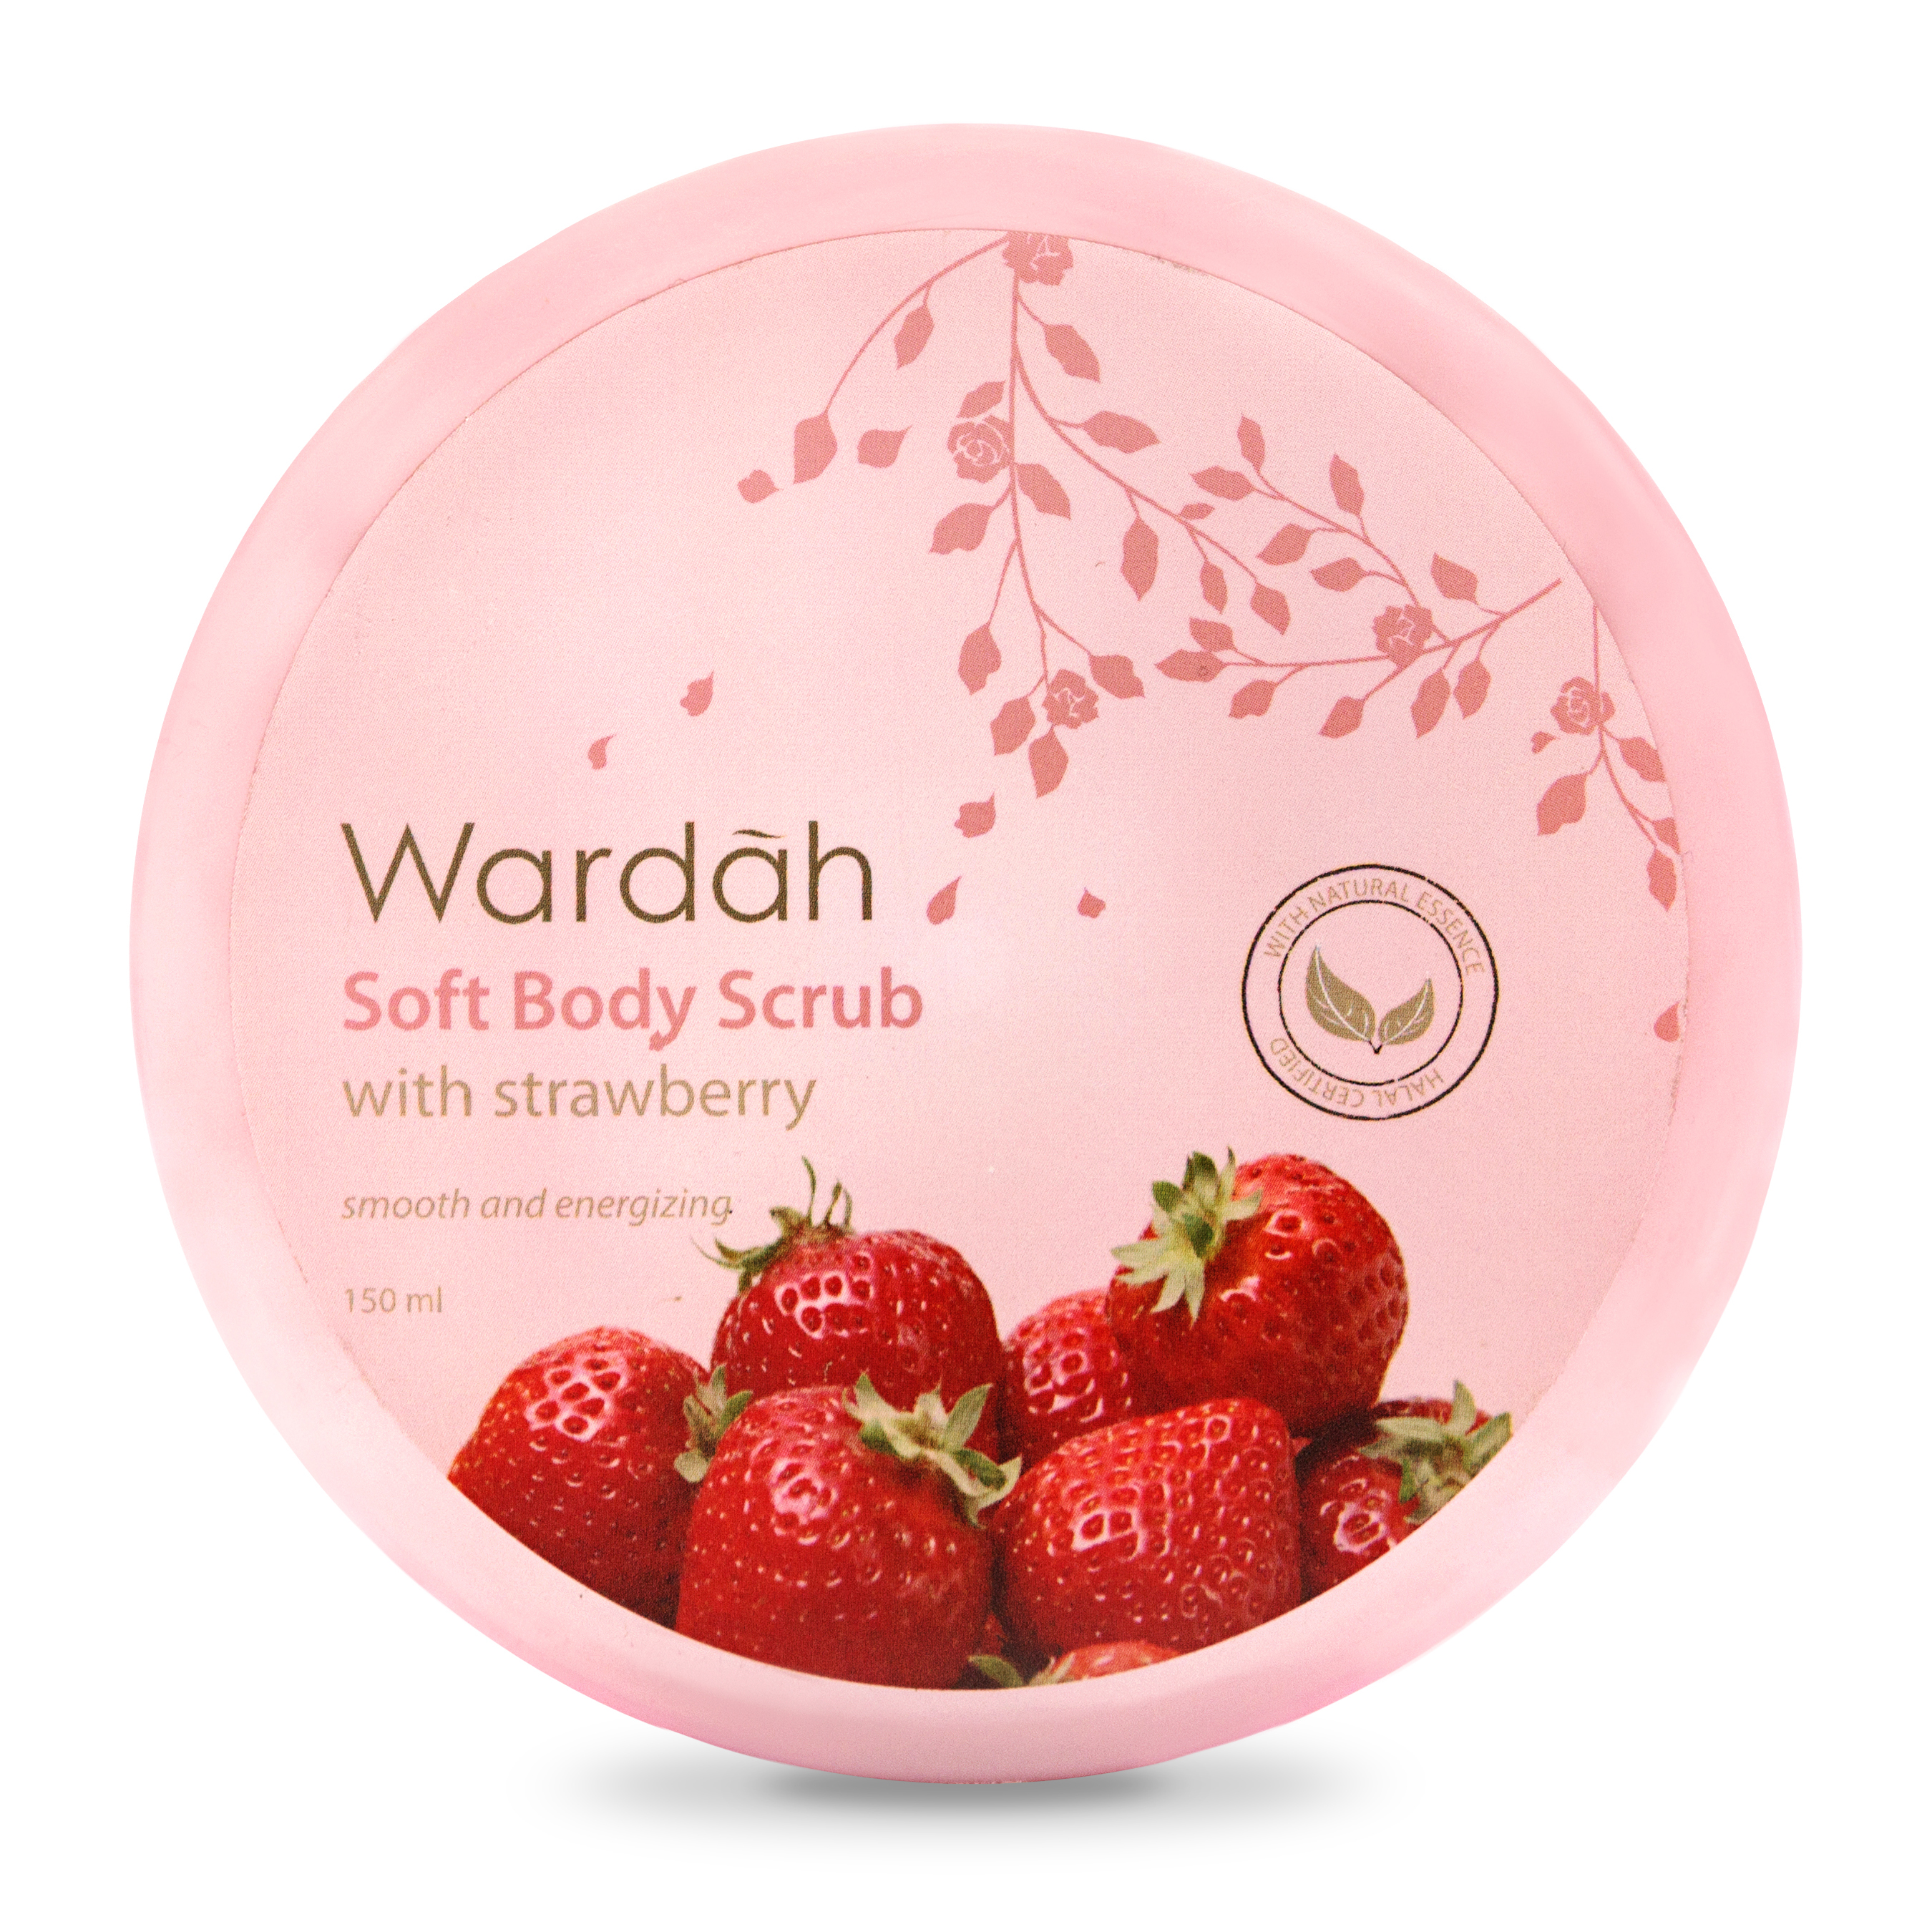 Wardah Soft Body Scrub Strawberry 150ml